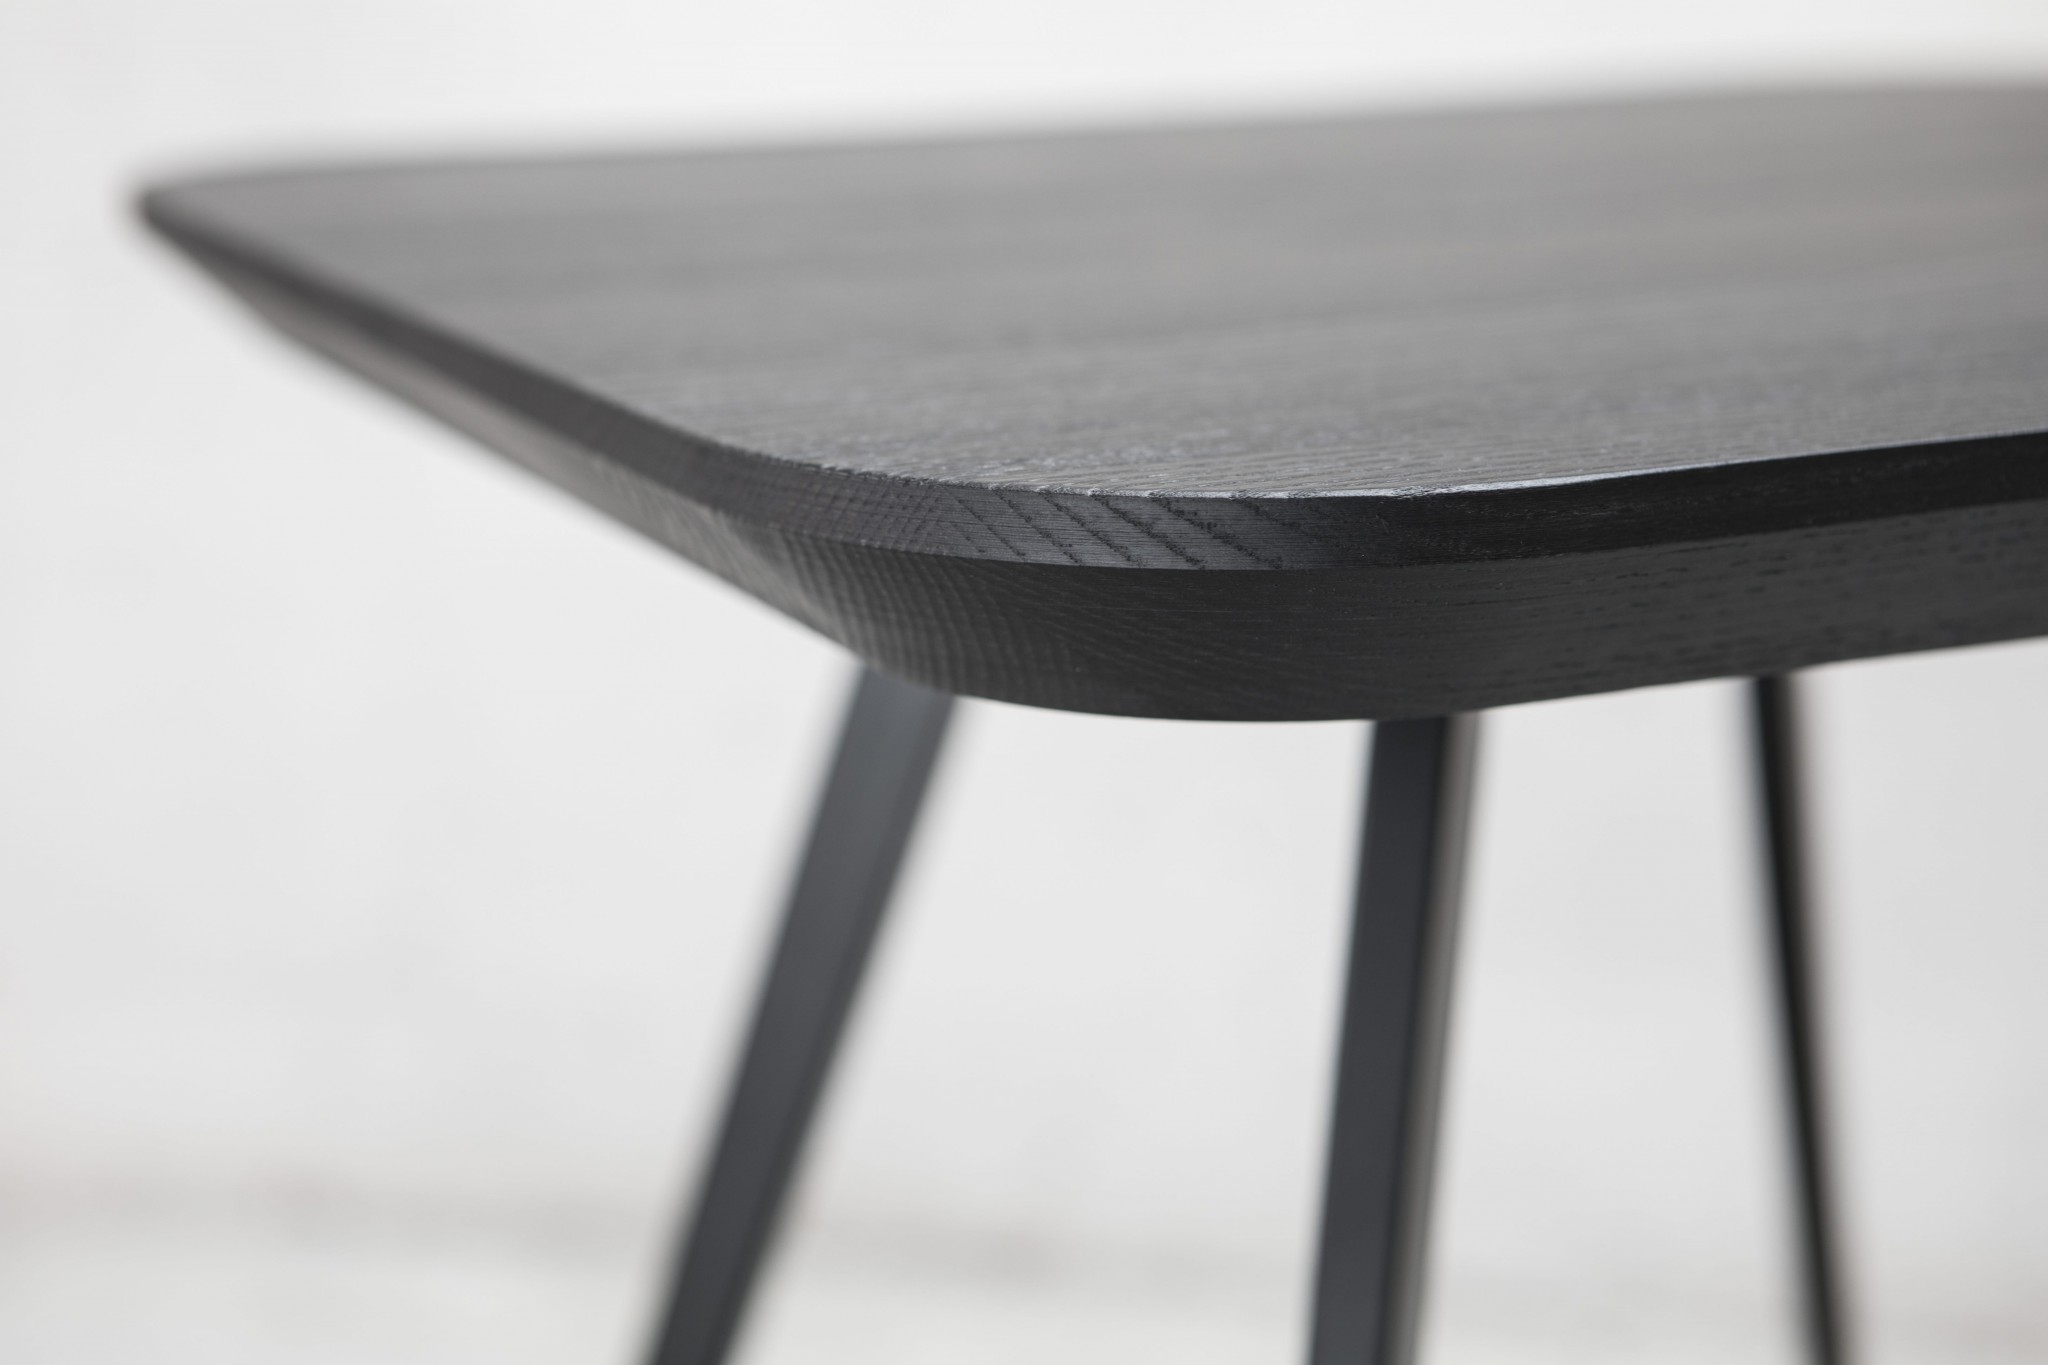 PARTICOLARE AKY SMALL TABLE MET (2)